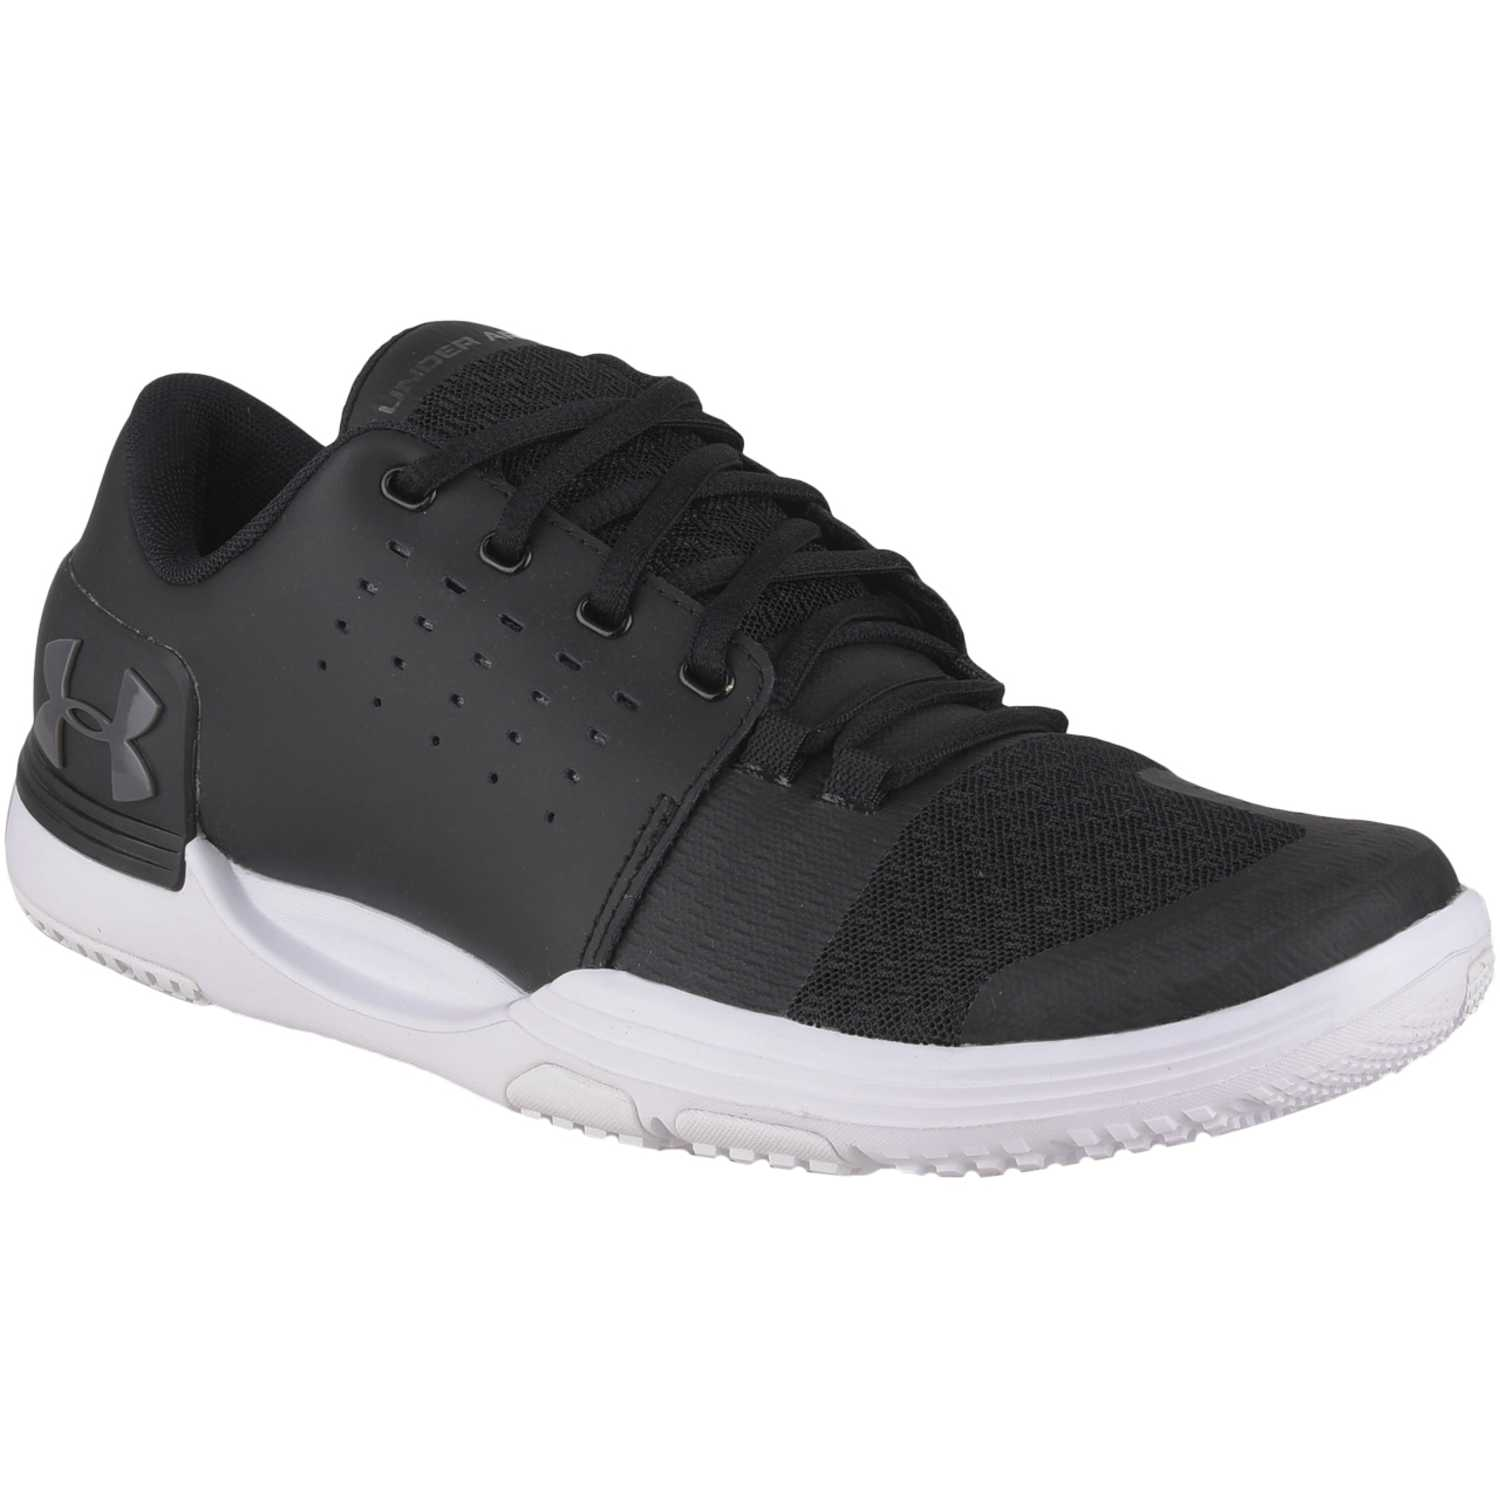 Under Armour ua limitless tr 3.0 Negro Hombres